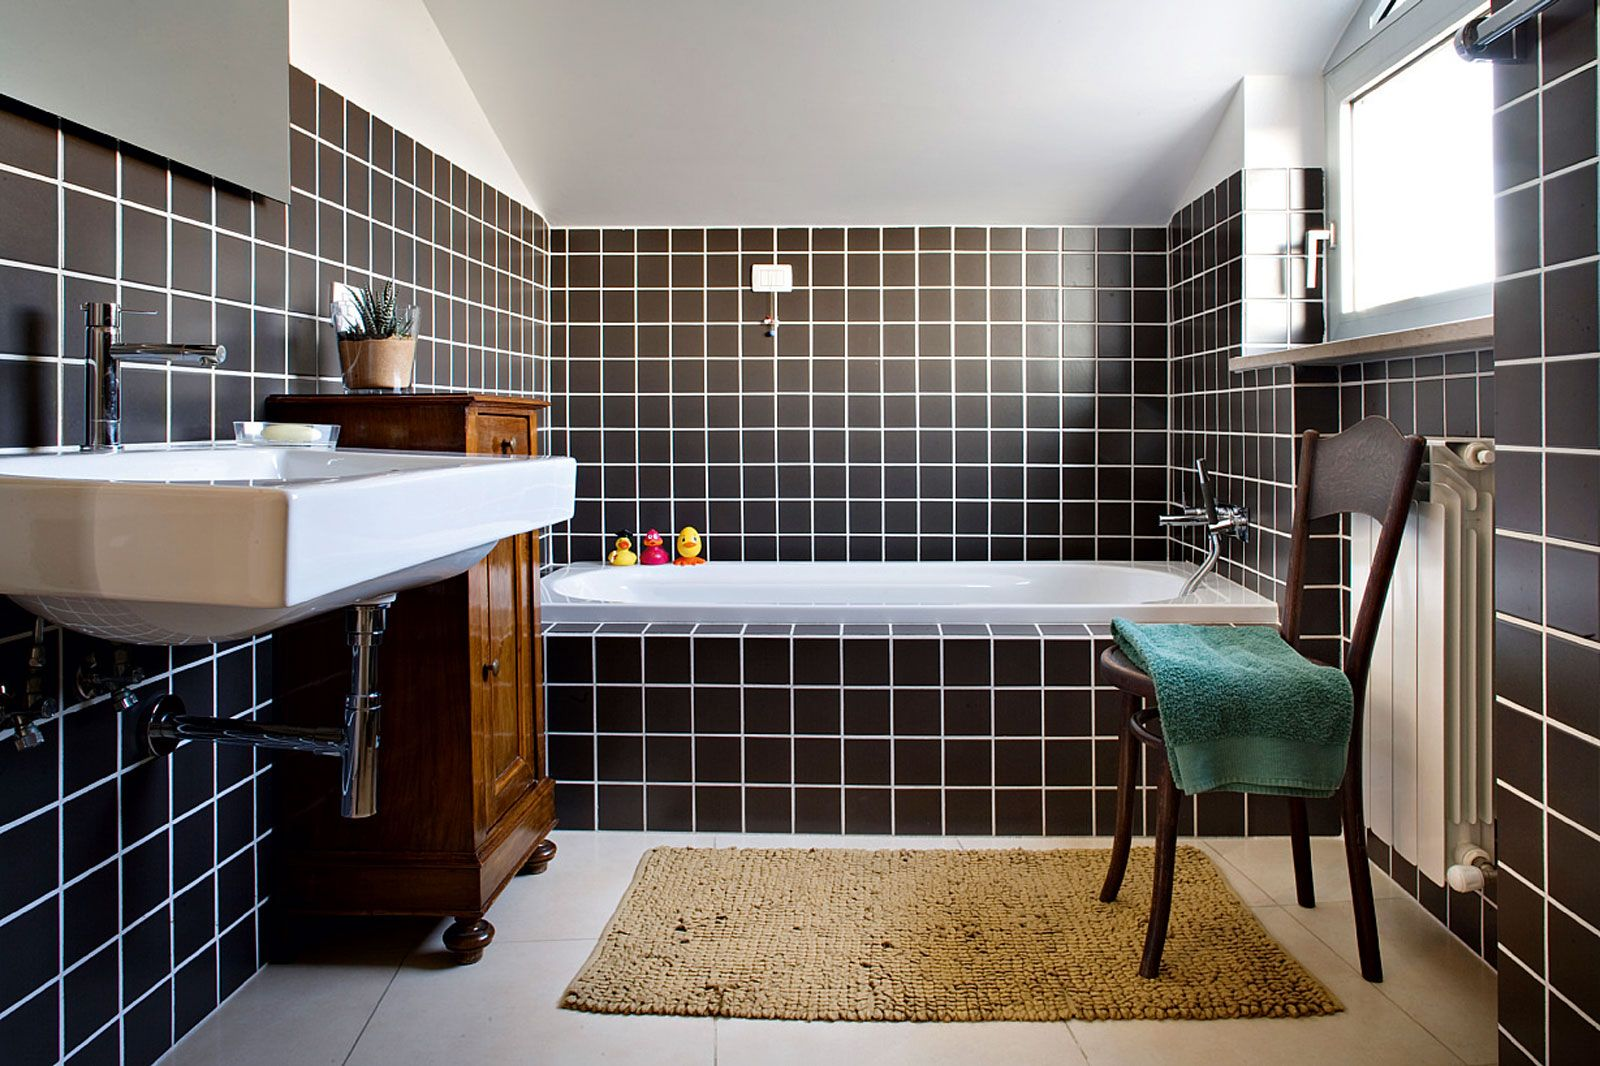 1000+ images about Bagni on Pinterest